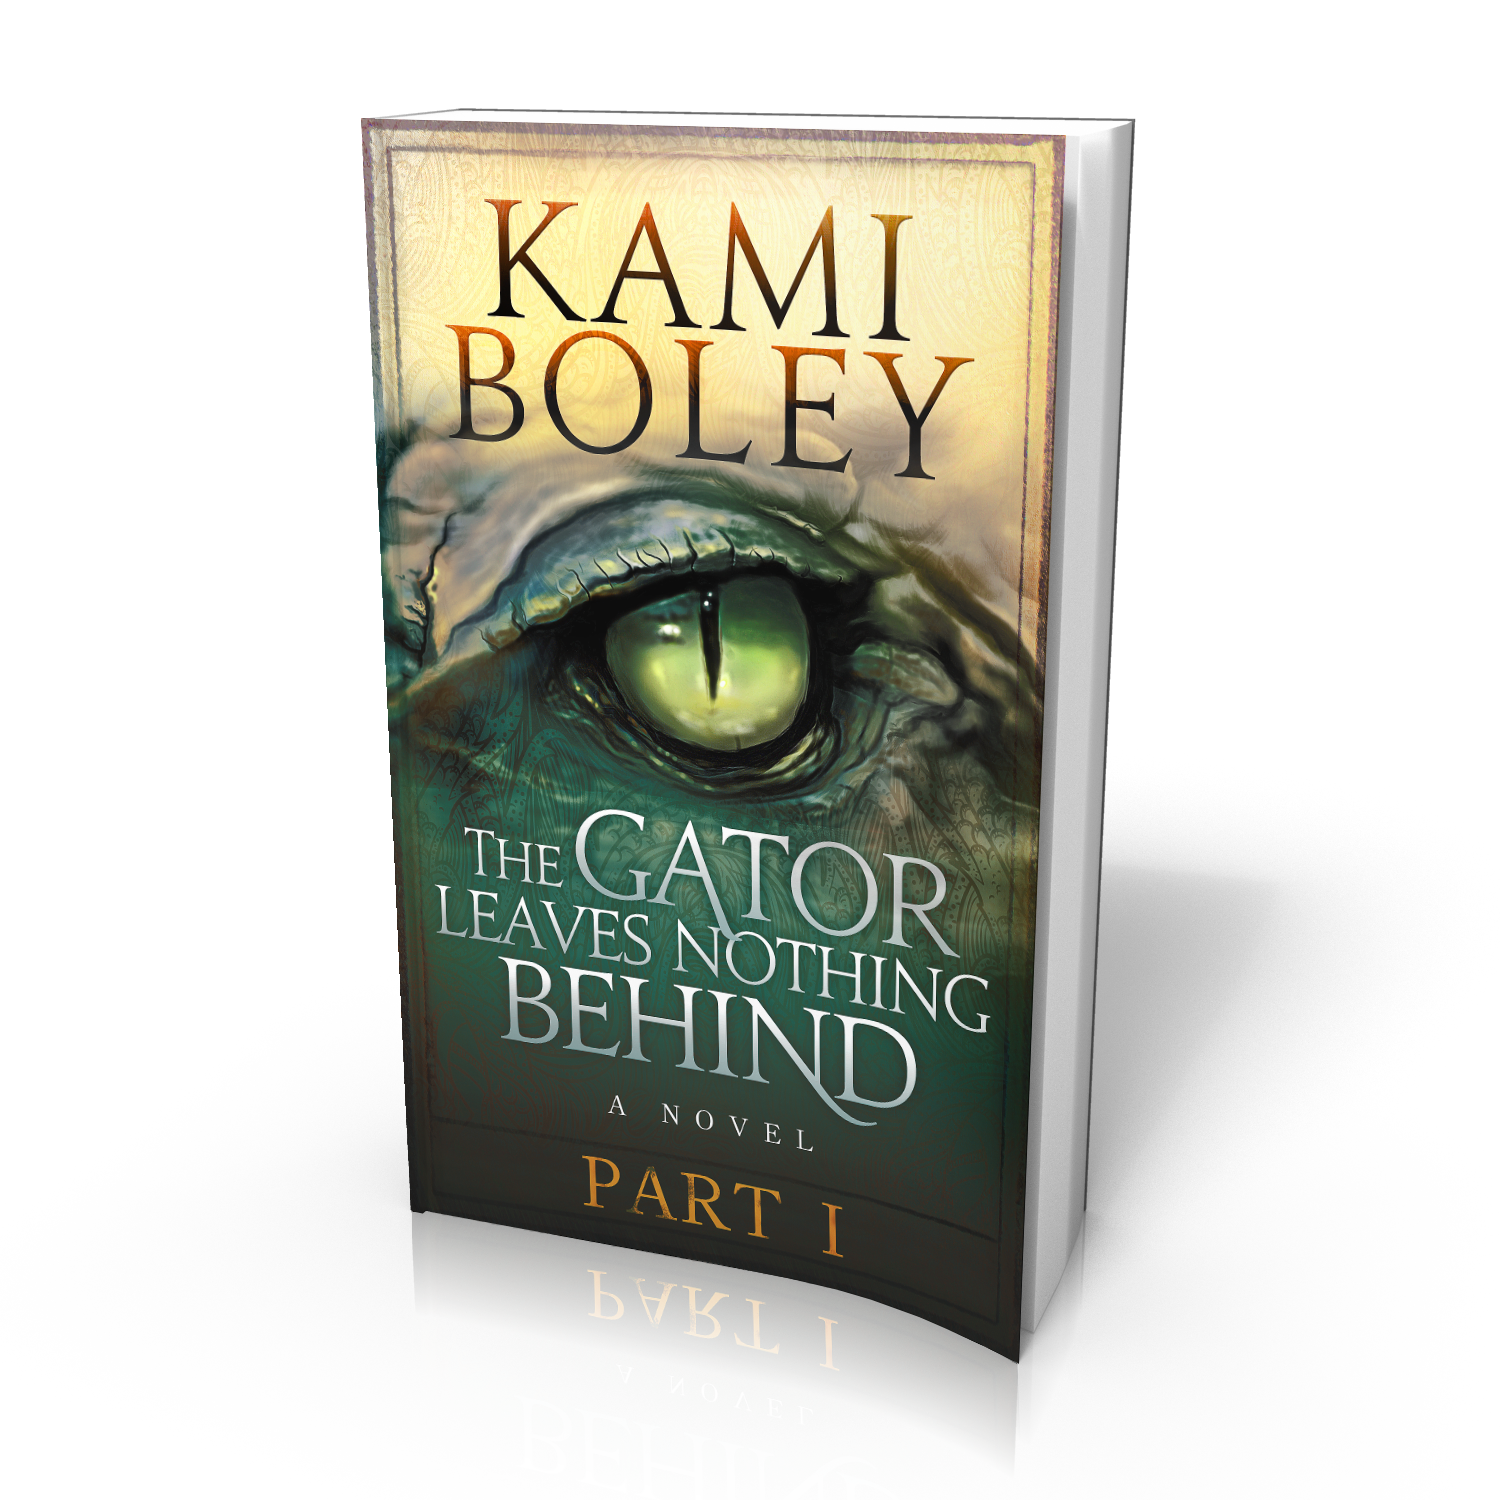 Part I - Start at the beginning with Kami Boley's The Gator Leaves Nothing Behind: Part I.